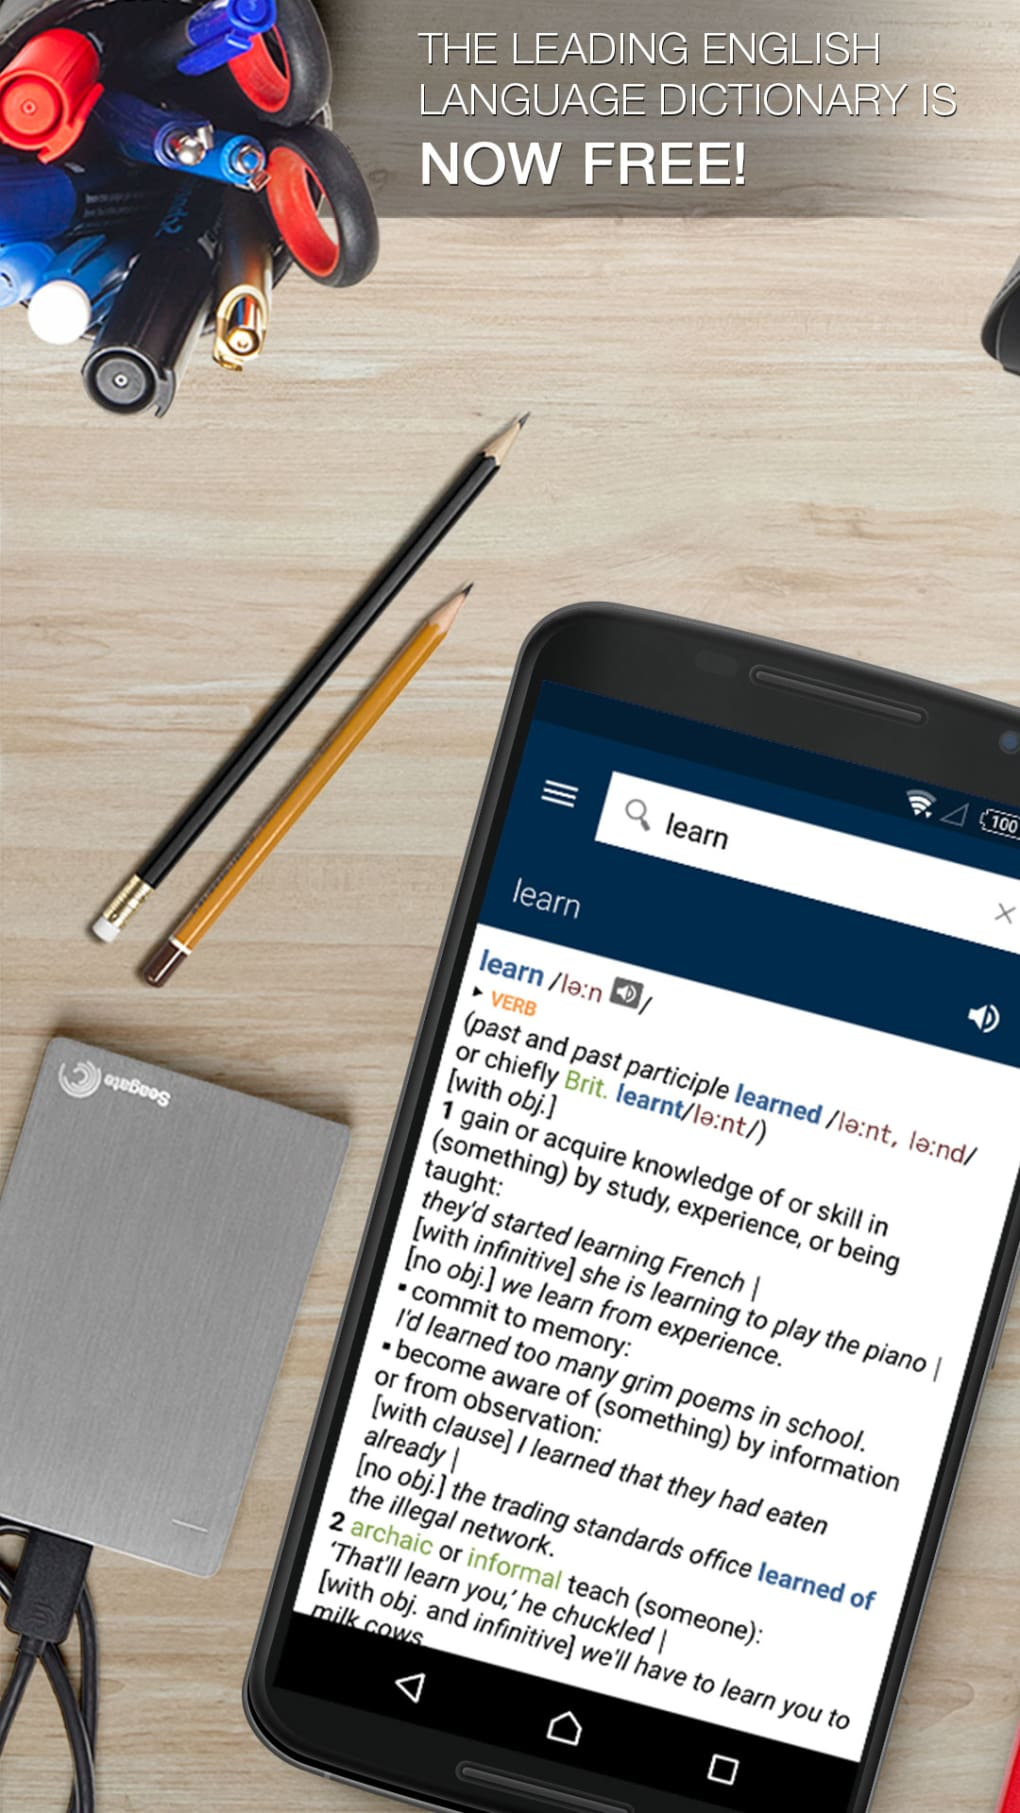 Oxford Dictionary of English FREE for Android - Download